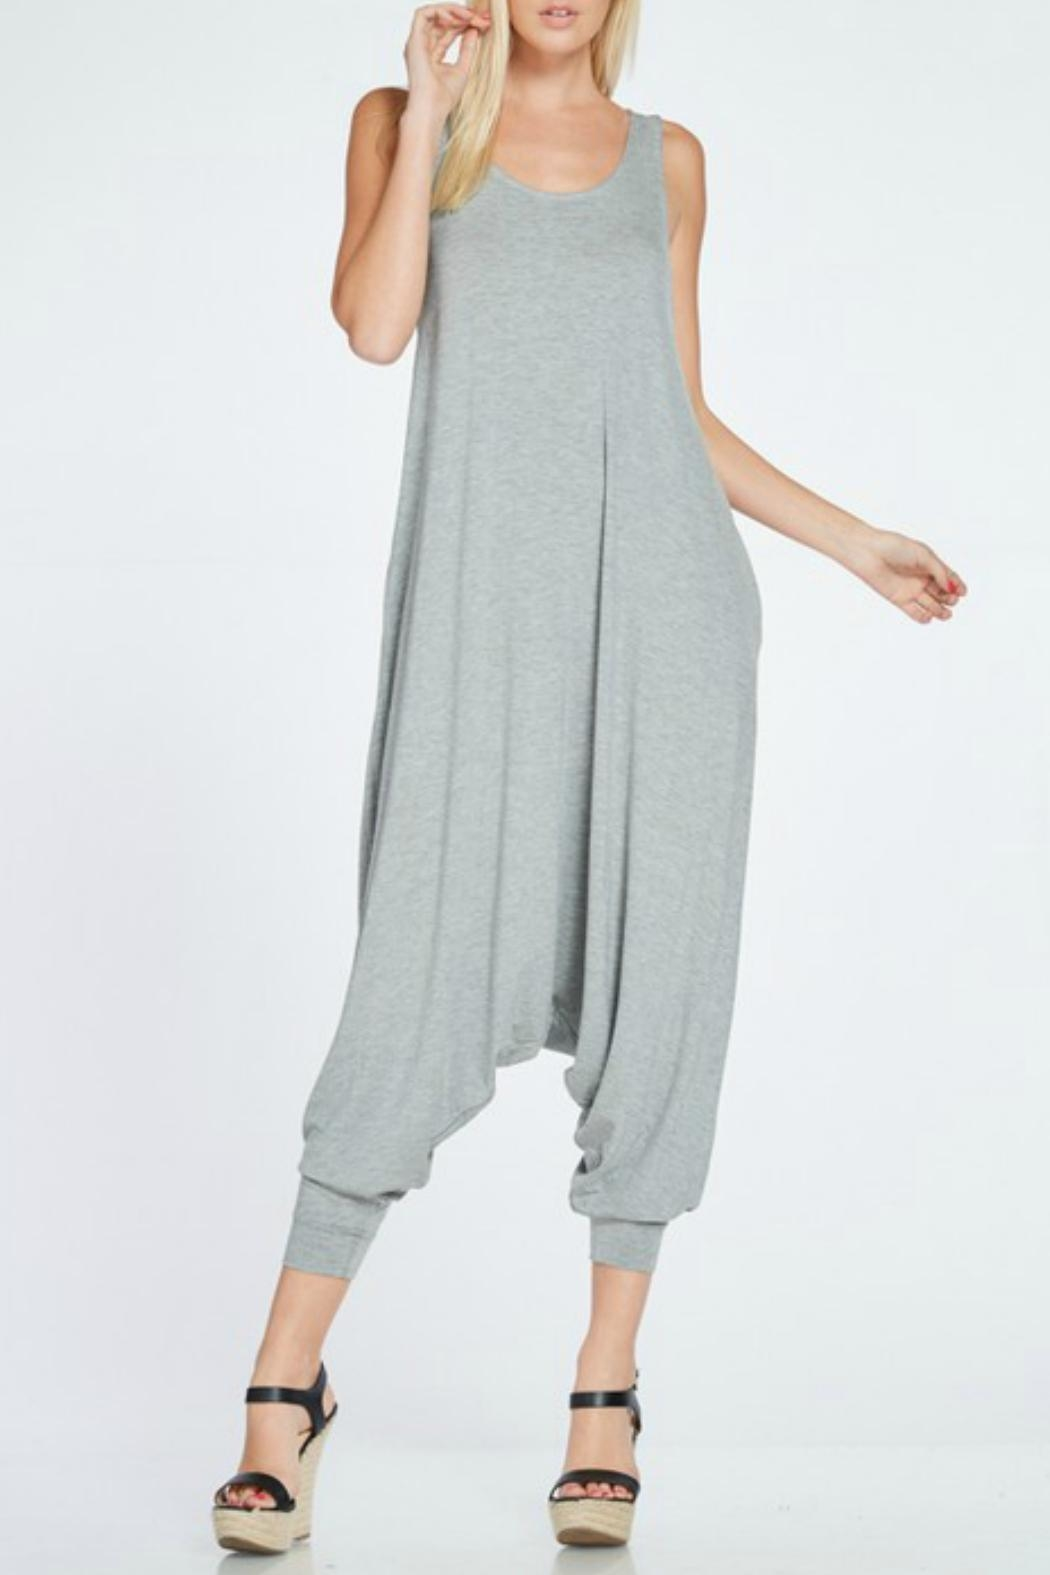 792e5197be90 annabelle Scoop Harem Jumpsuit from Canada by Blue Sky Fashions ...